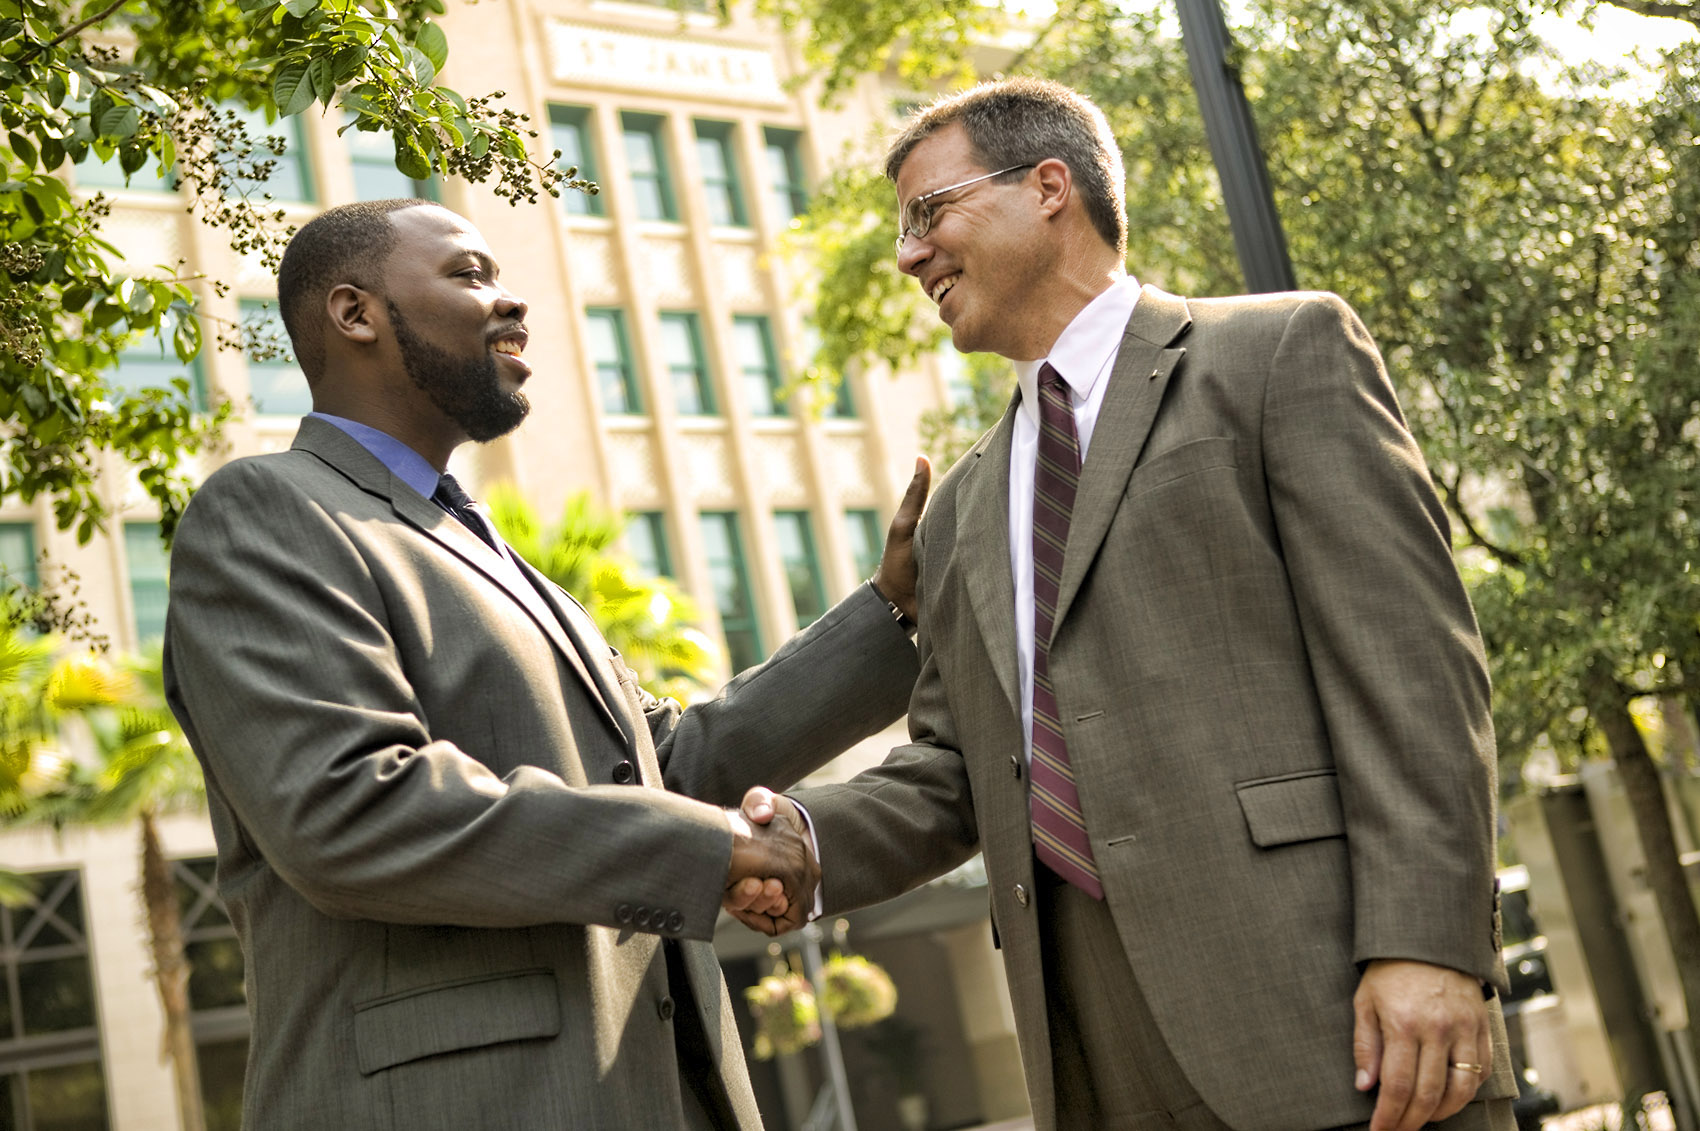 business executives friendly handshake outdoors